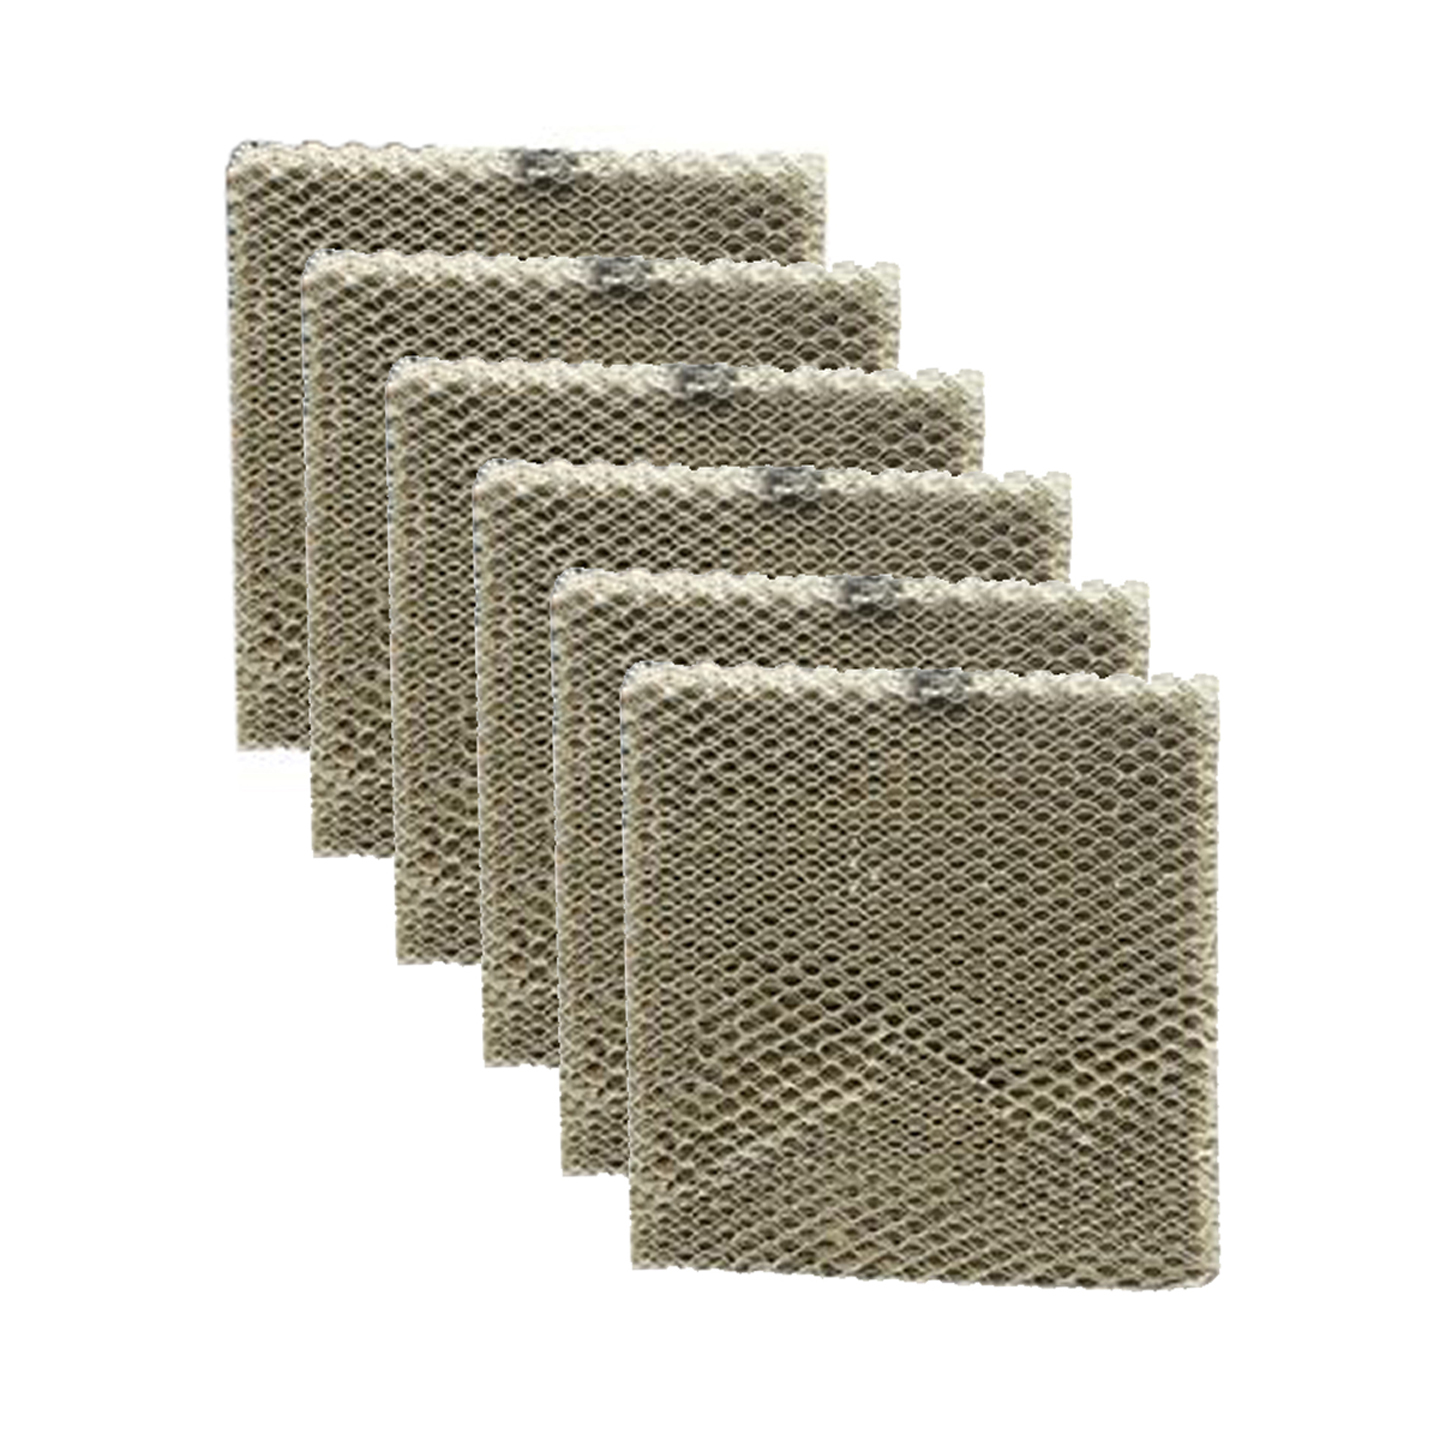 #10 Aprilaire Comparable Humidifier Replacement Water Panel by Tier1 (6-Pack) TIER1_HMF1220_6_PACK